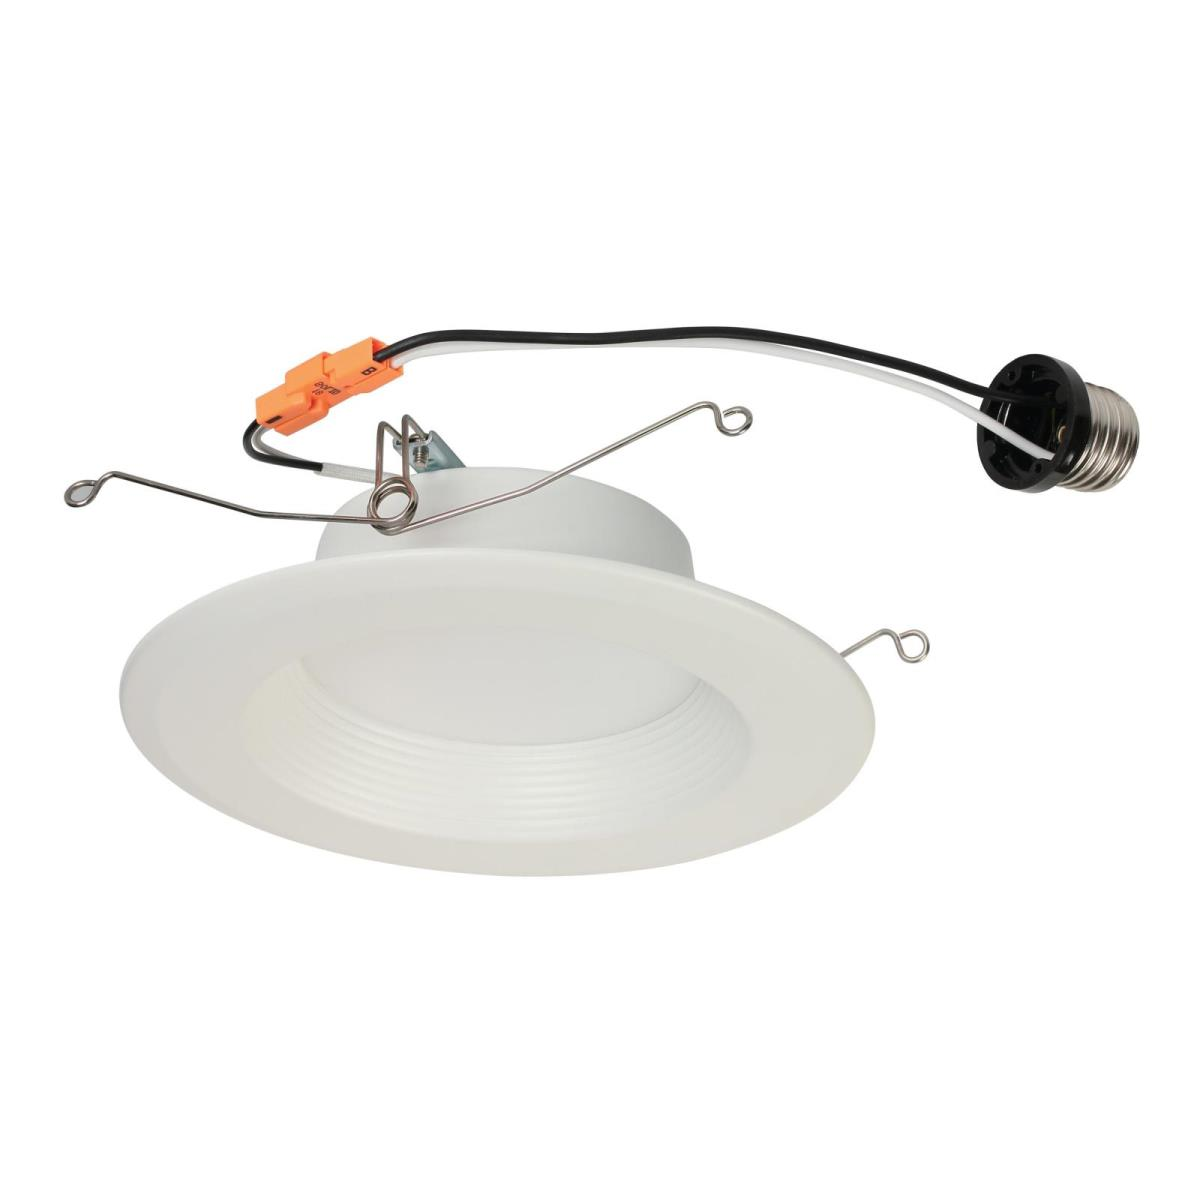 "11W Recessed Downlight 5-6"" LED Dimmable 3000K E26 (Medium) Base, 120 Volt, Box"